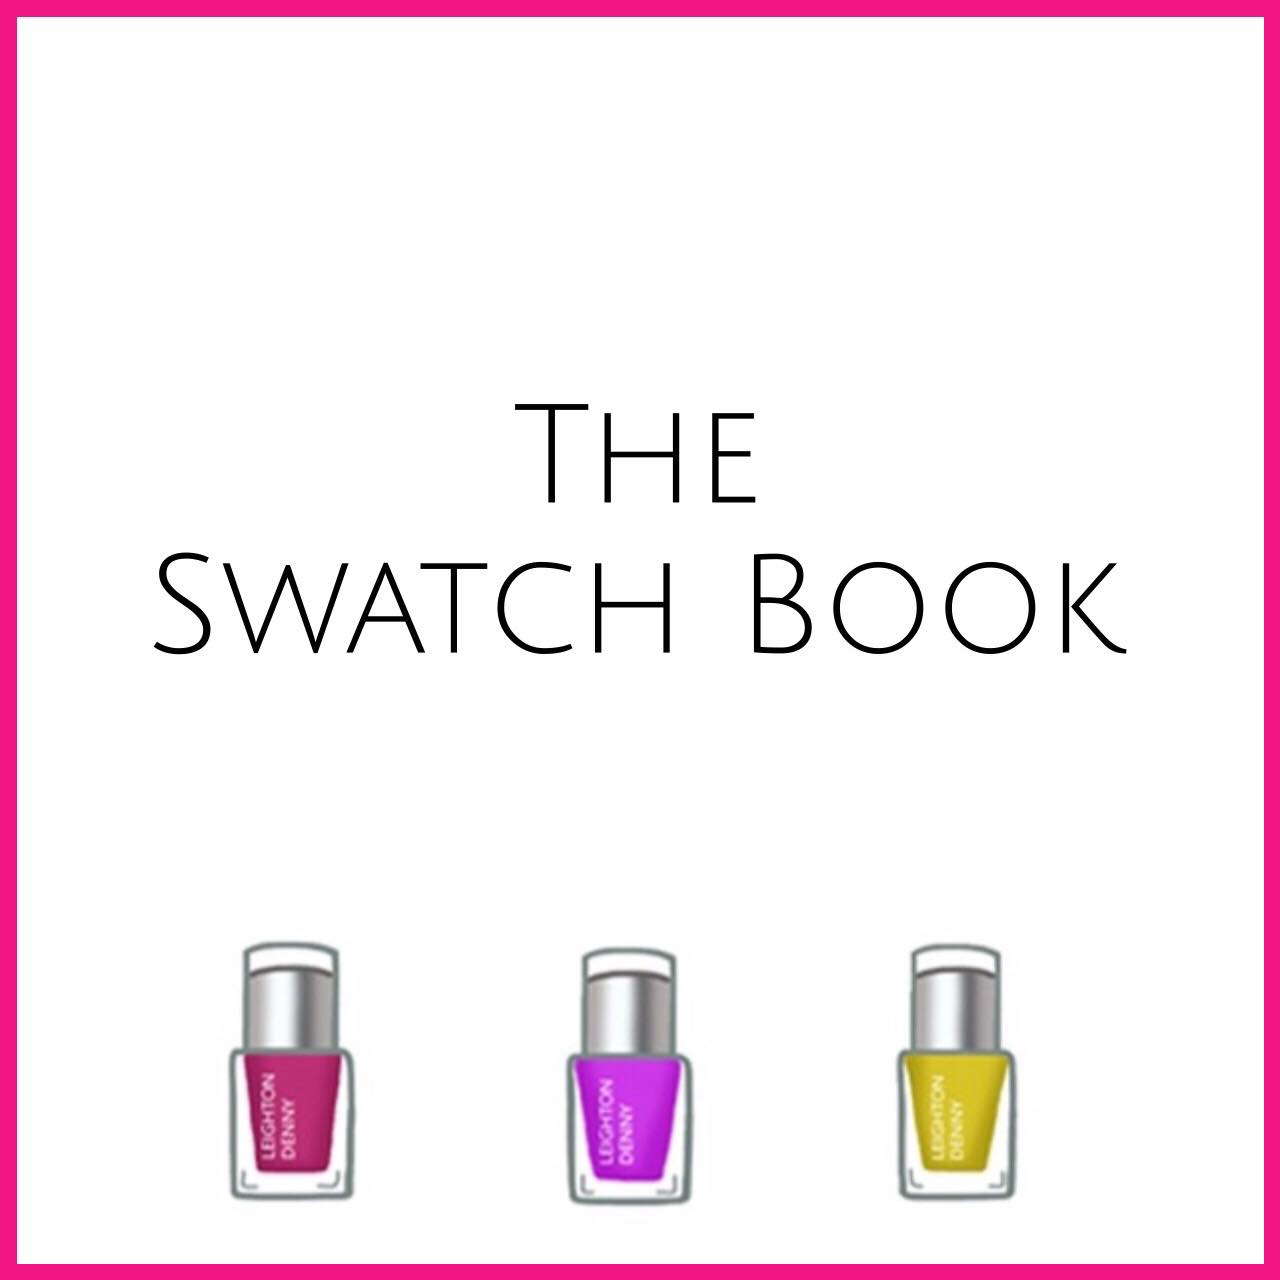 The Swatch Book